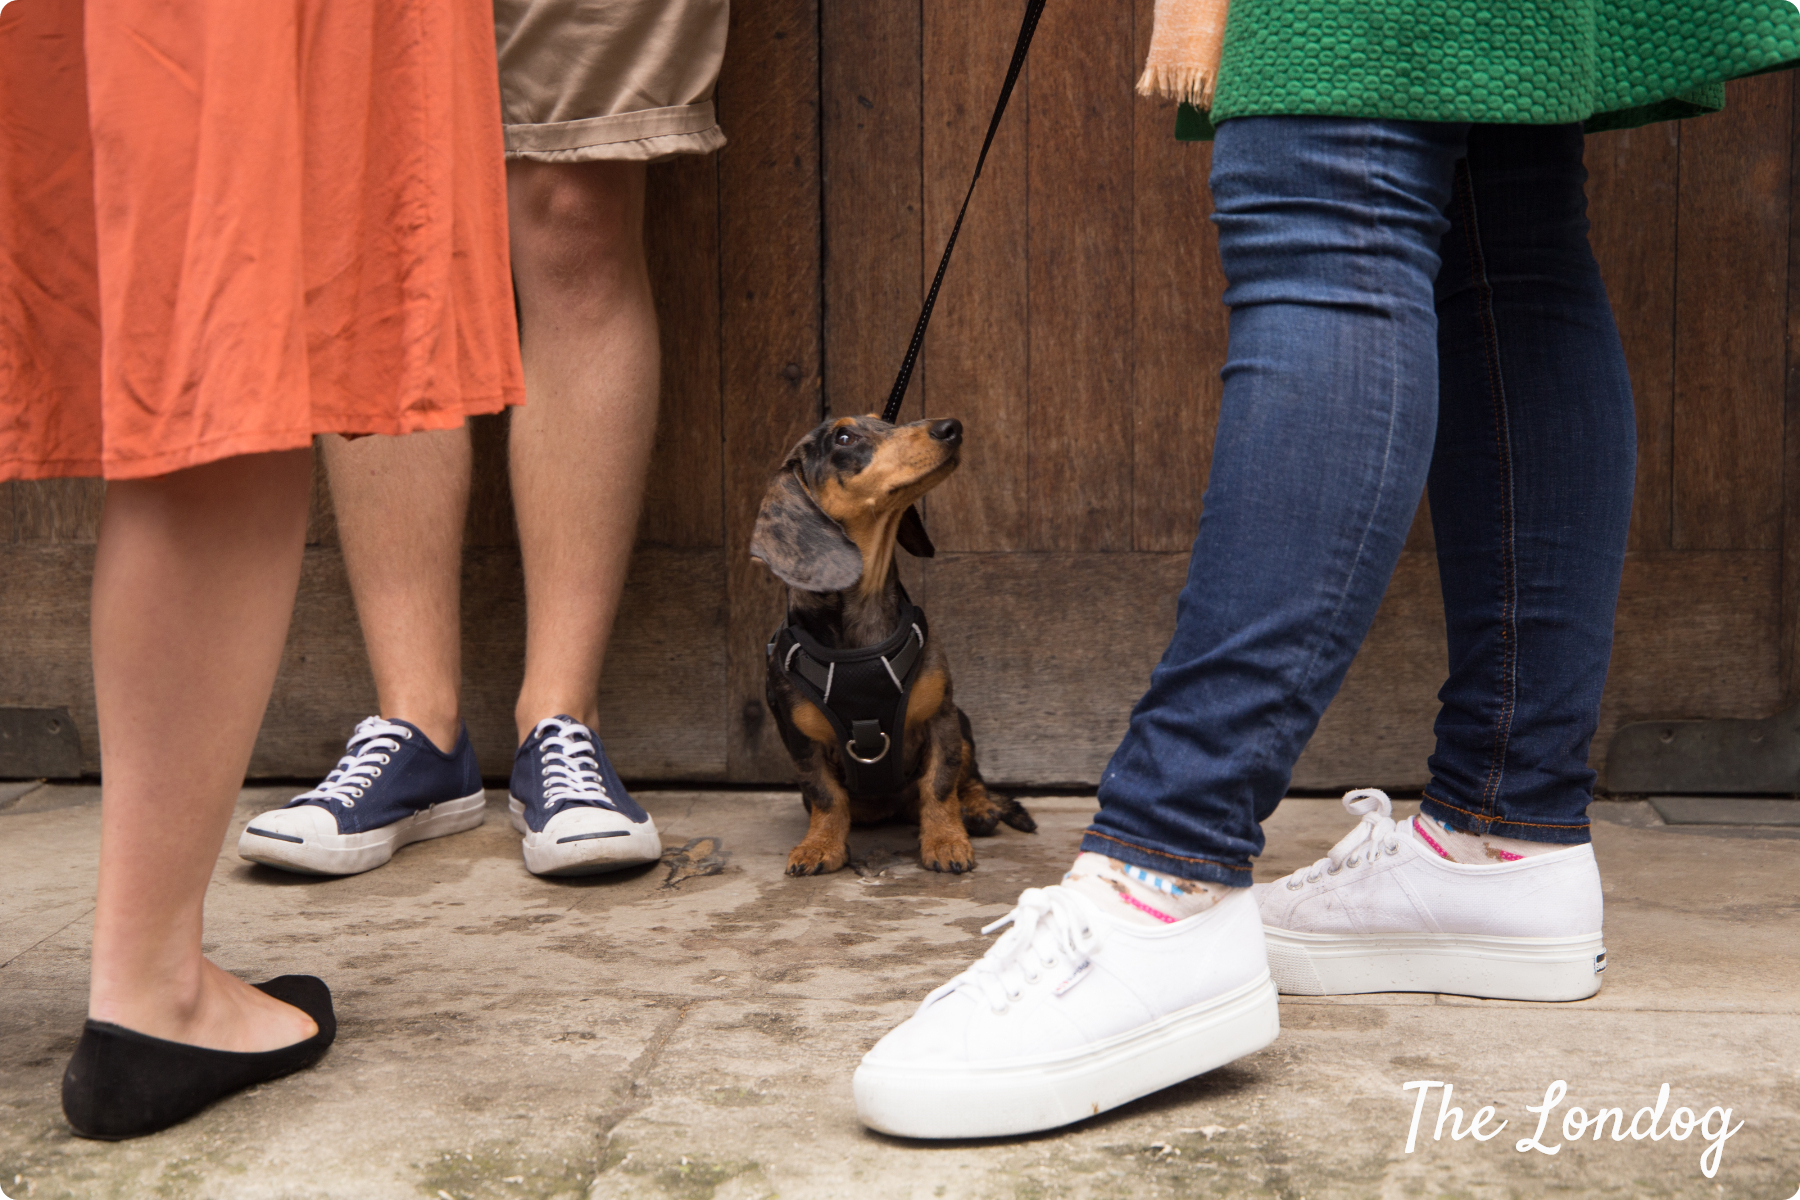 Sausage dog looking at people with colourful clothes